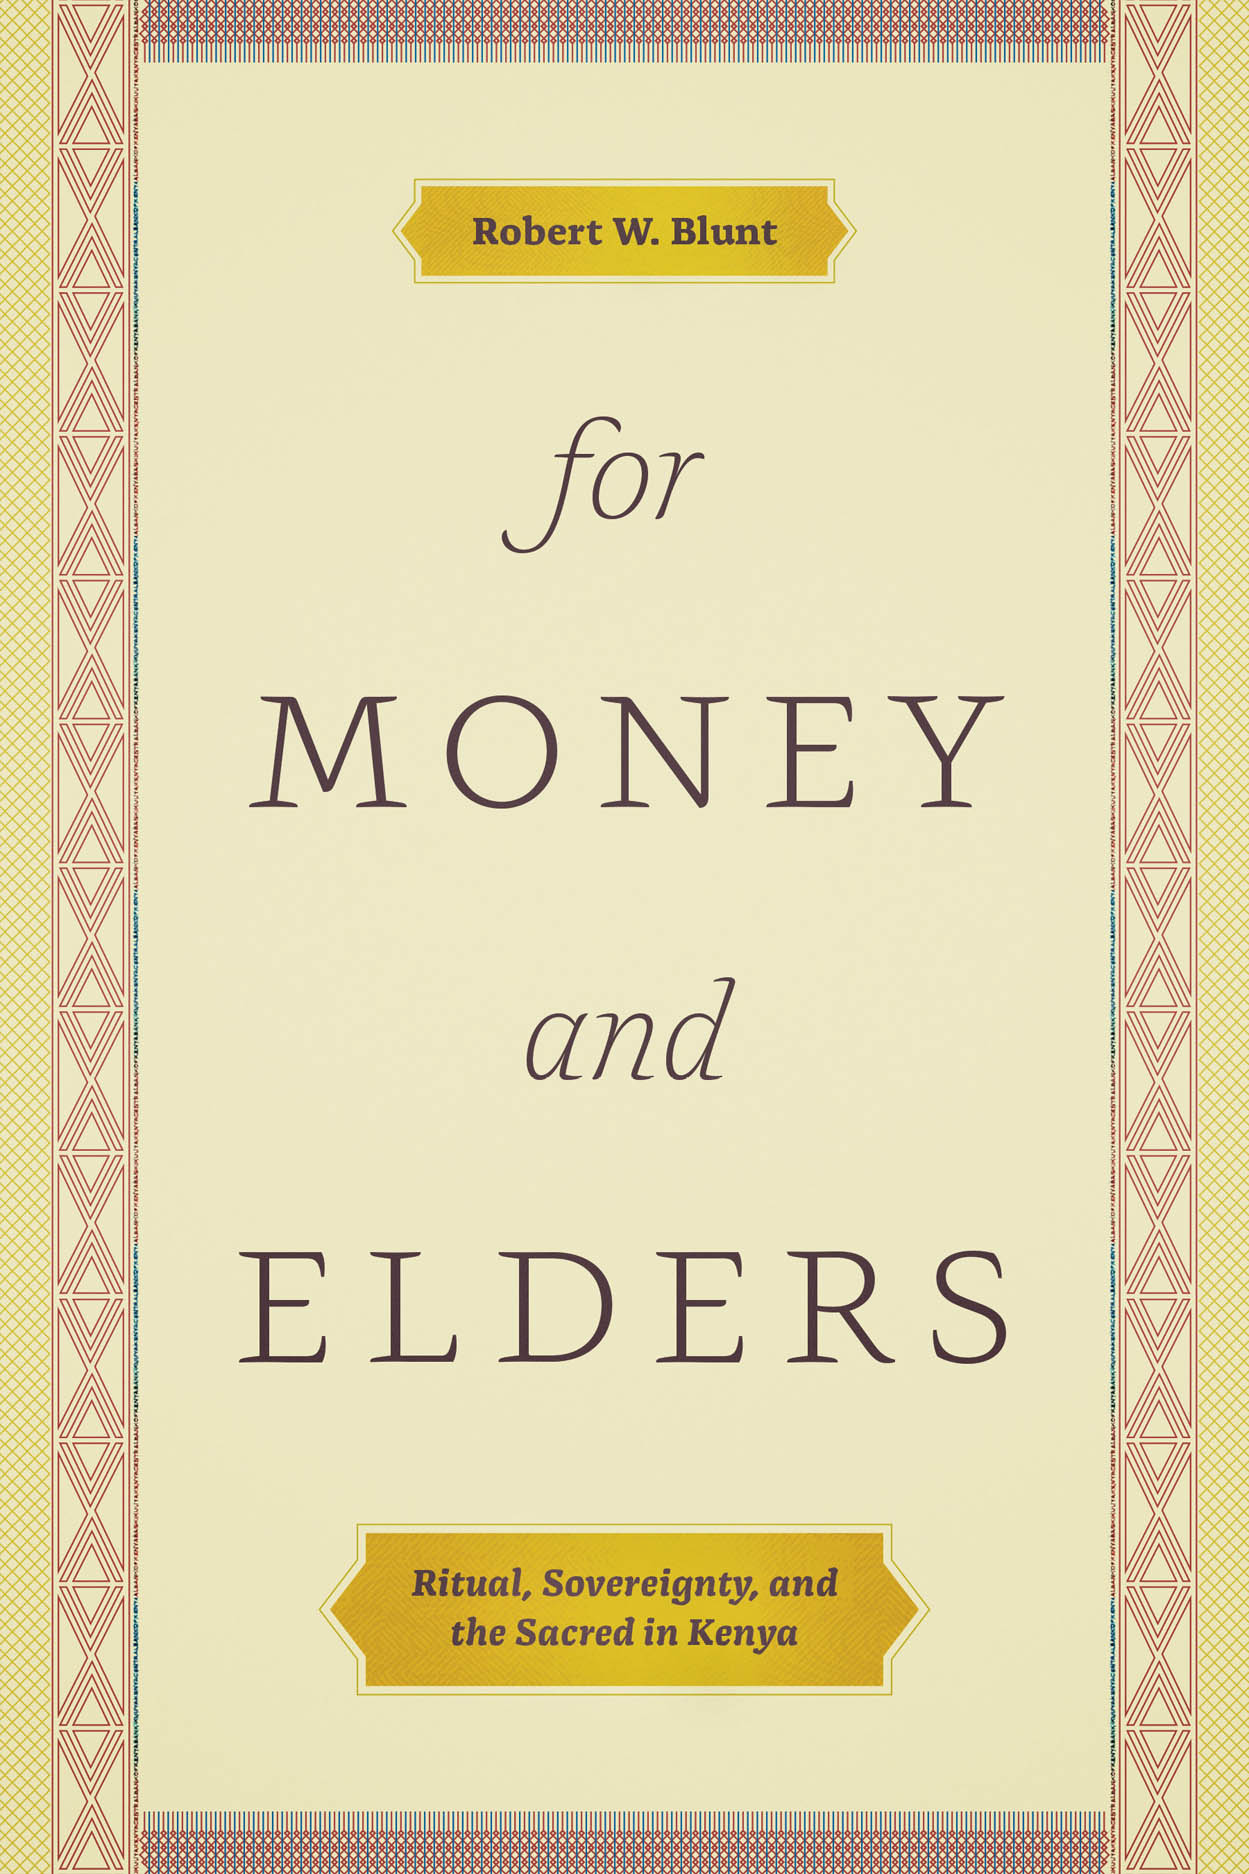 For Money and Elders